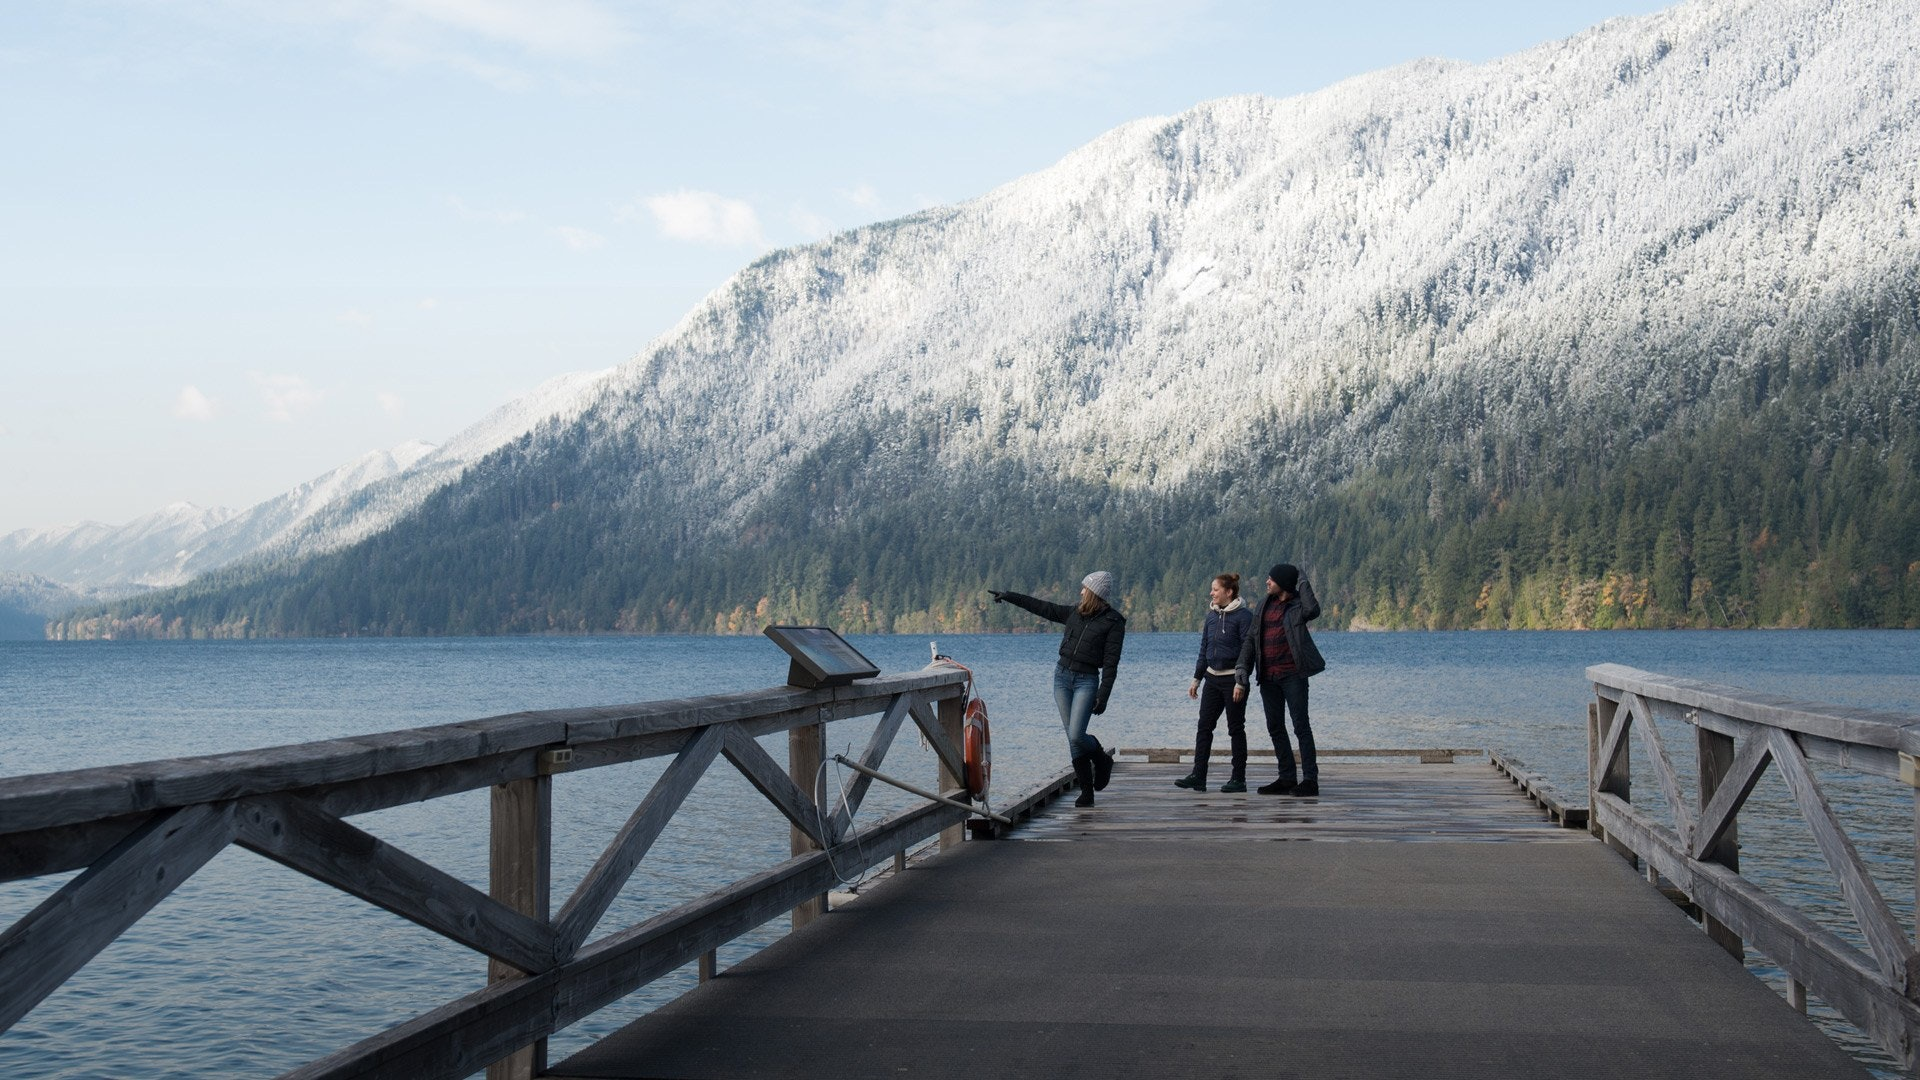 three people at the edge of a dock in front of lake and winter mountains